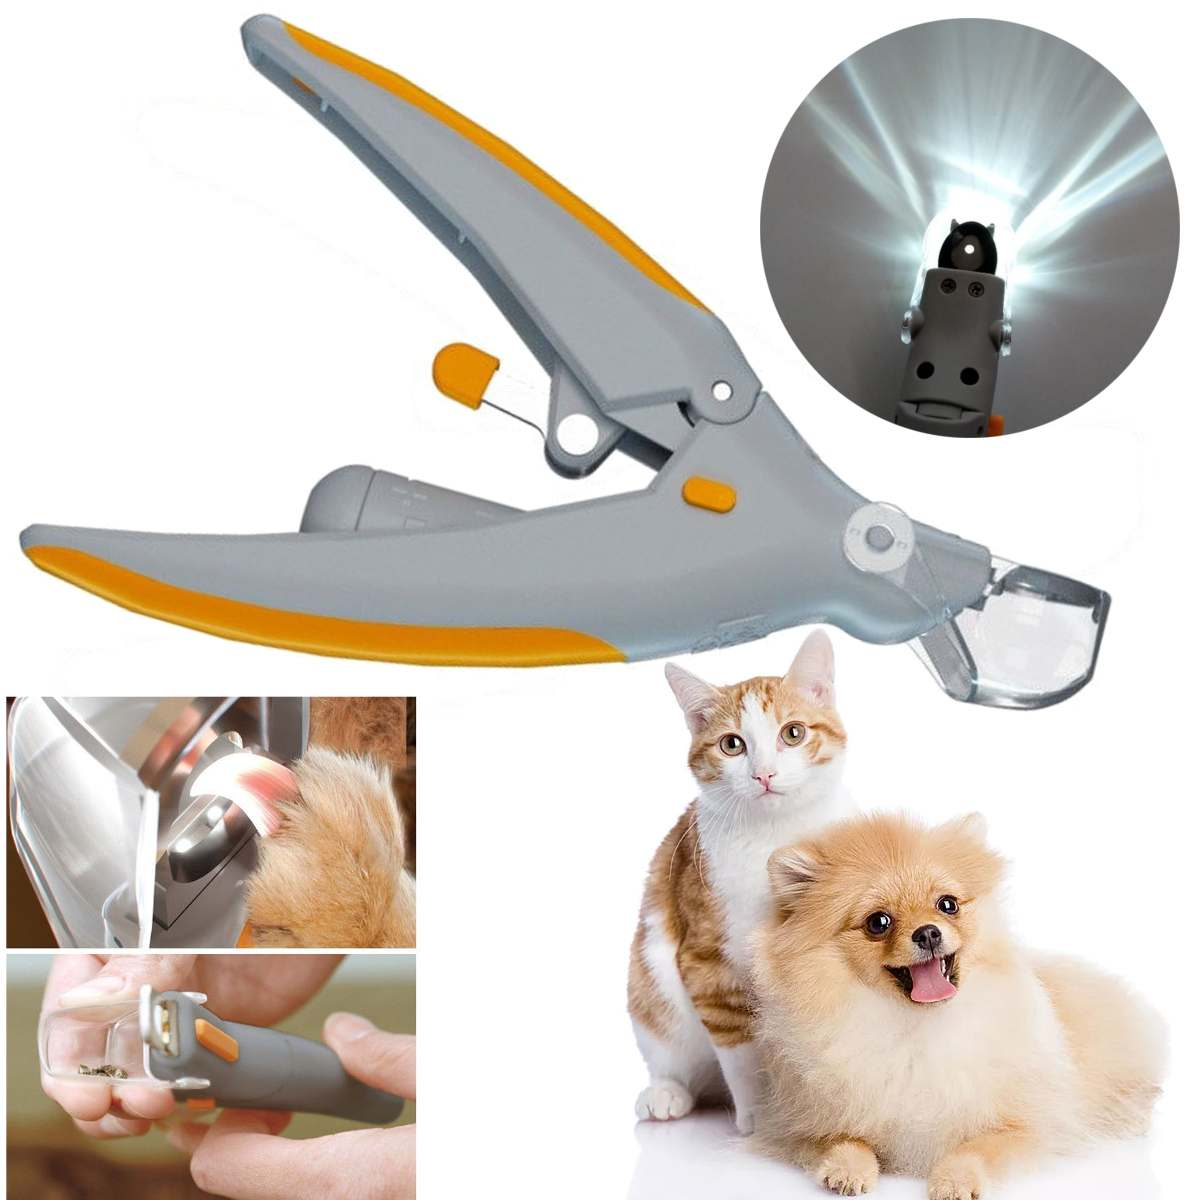 Professional Cat And Dog Nail Cutter Machine To Cut  Your Pets Nails Cleanly 4